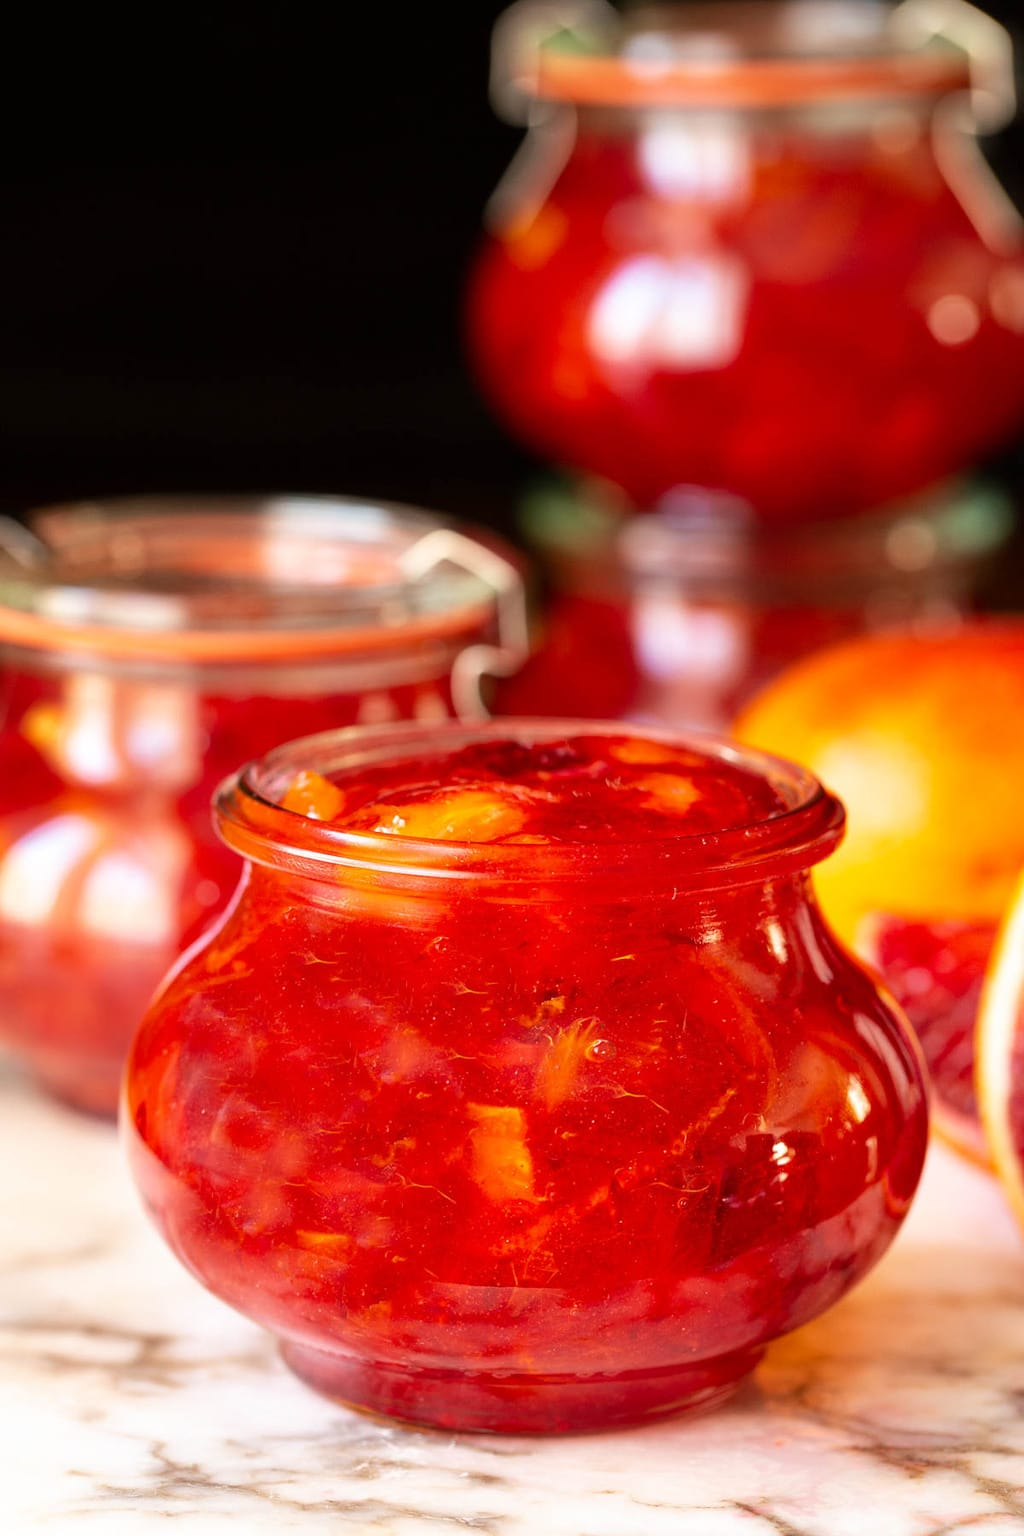 Vertical closeup photo of Weck glass jars of Blood Orange Marmalade on a marble countertop.